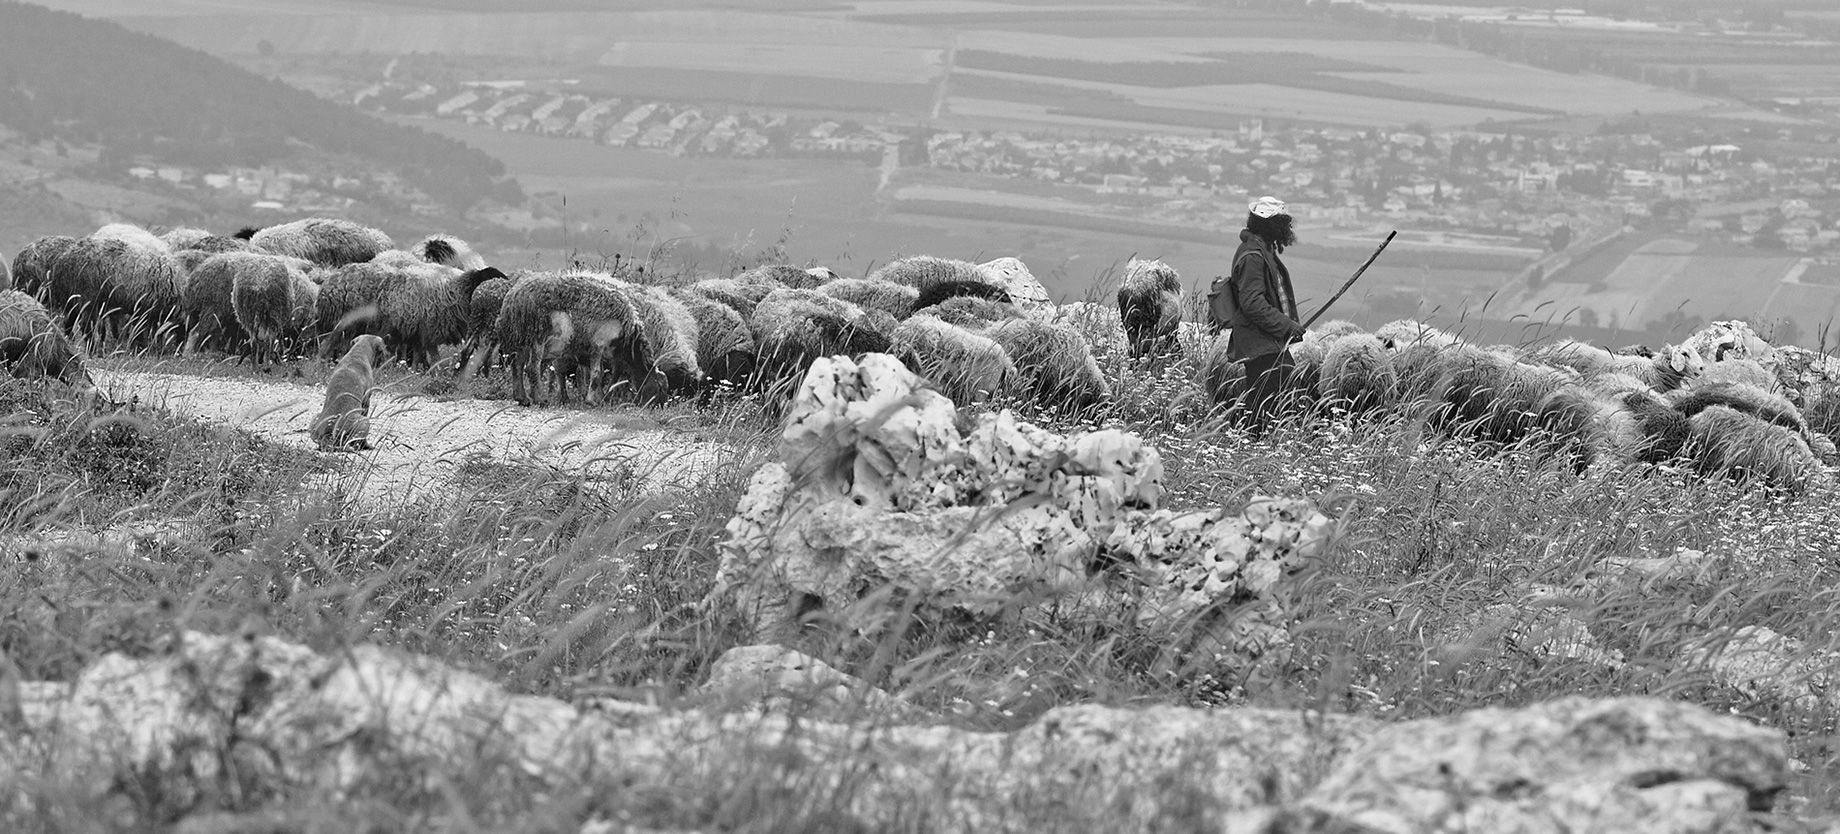 Shepherds, a Man and a Dog